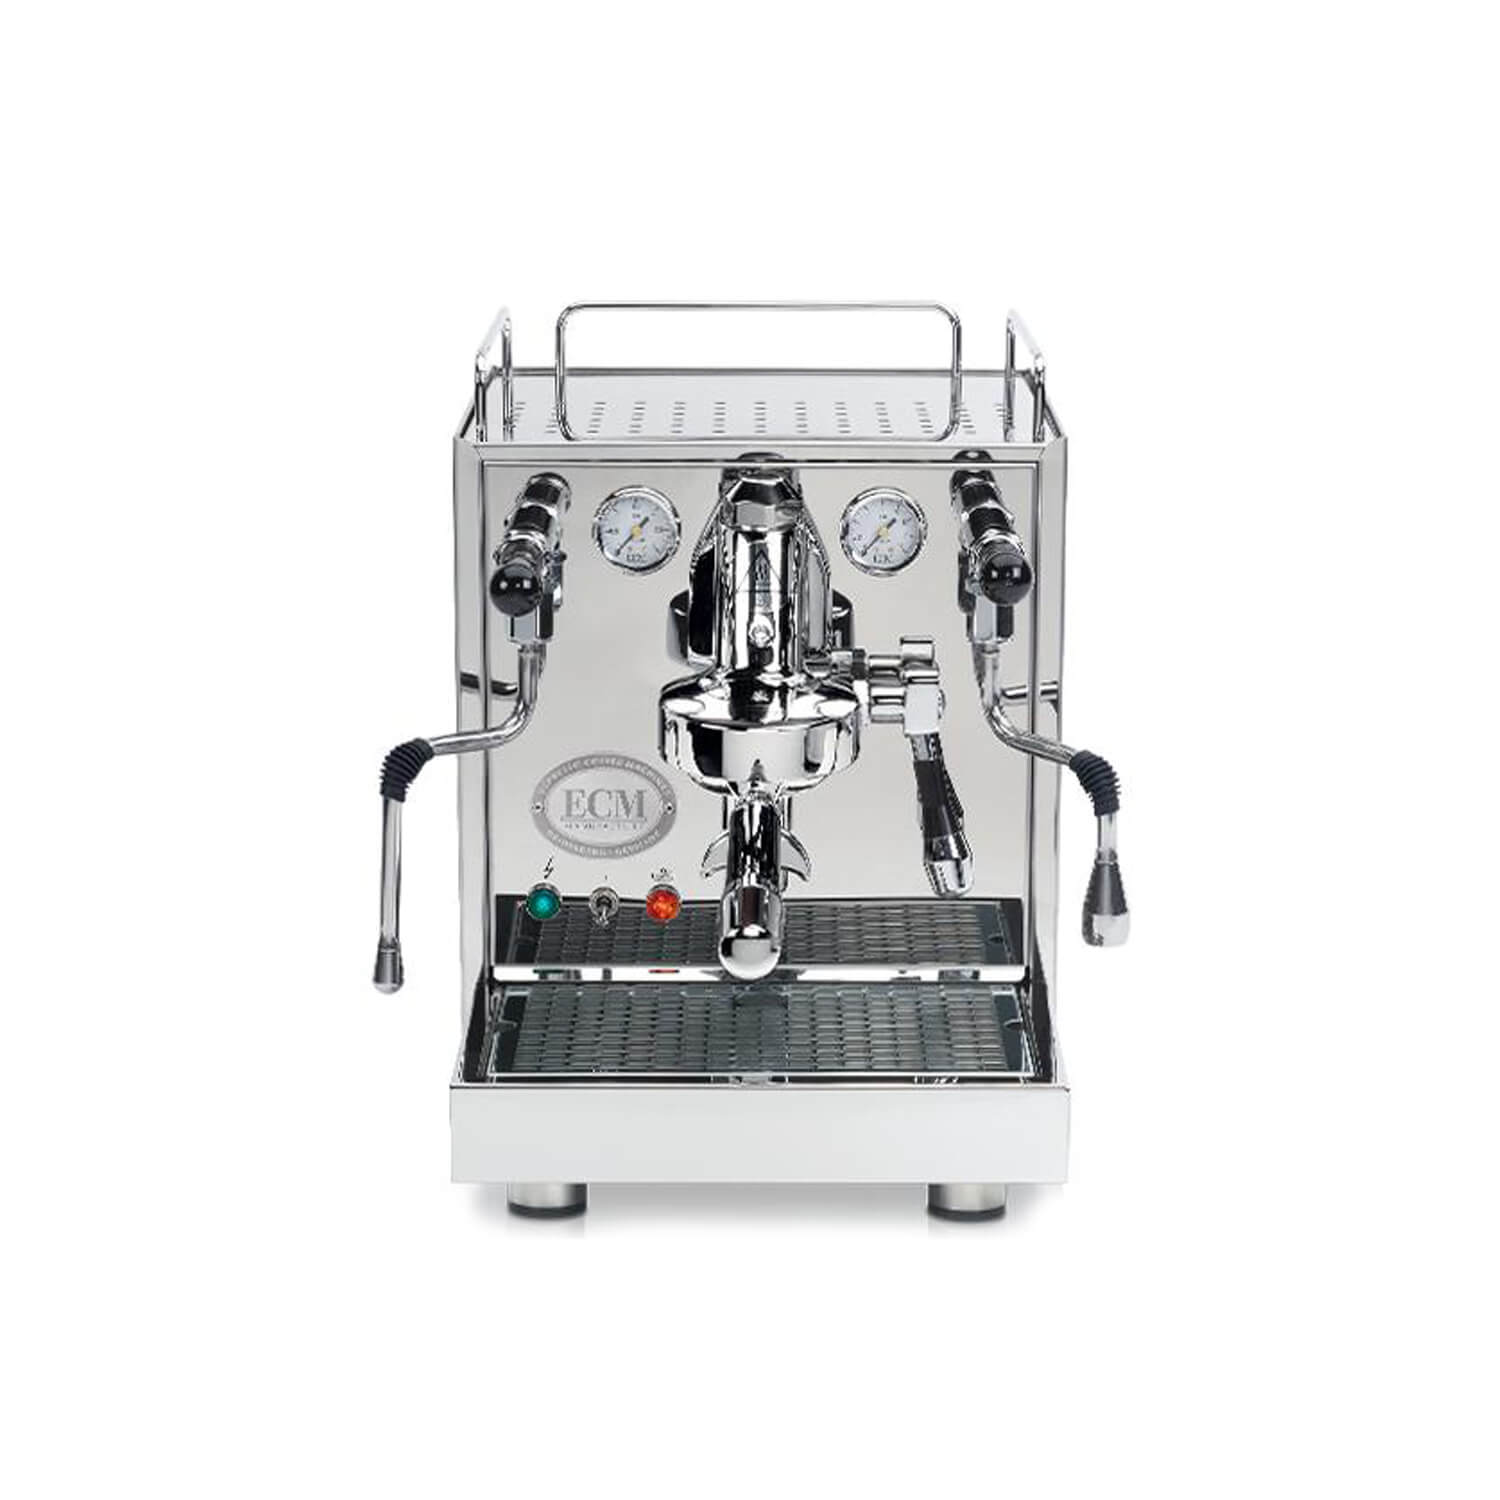 ECM - Espressomachine - Mechanika IV - Profi